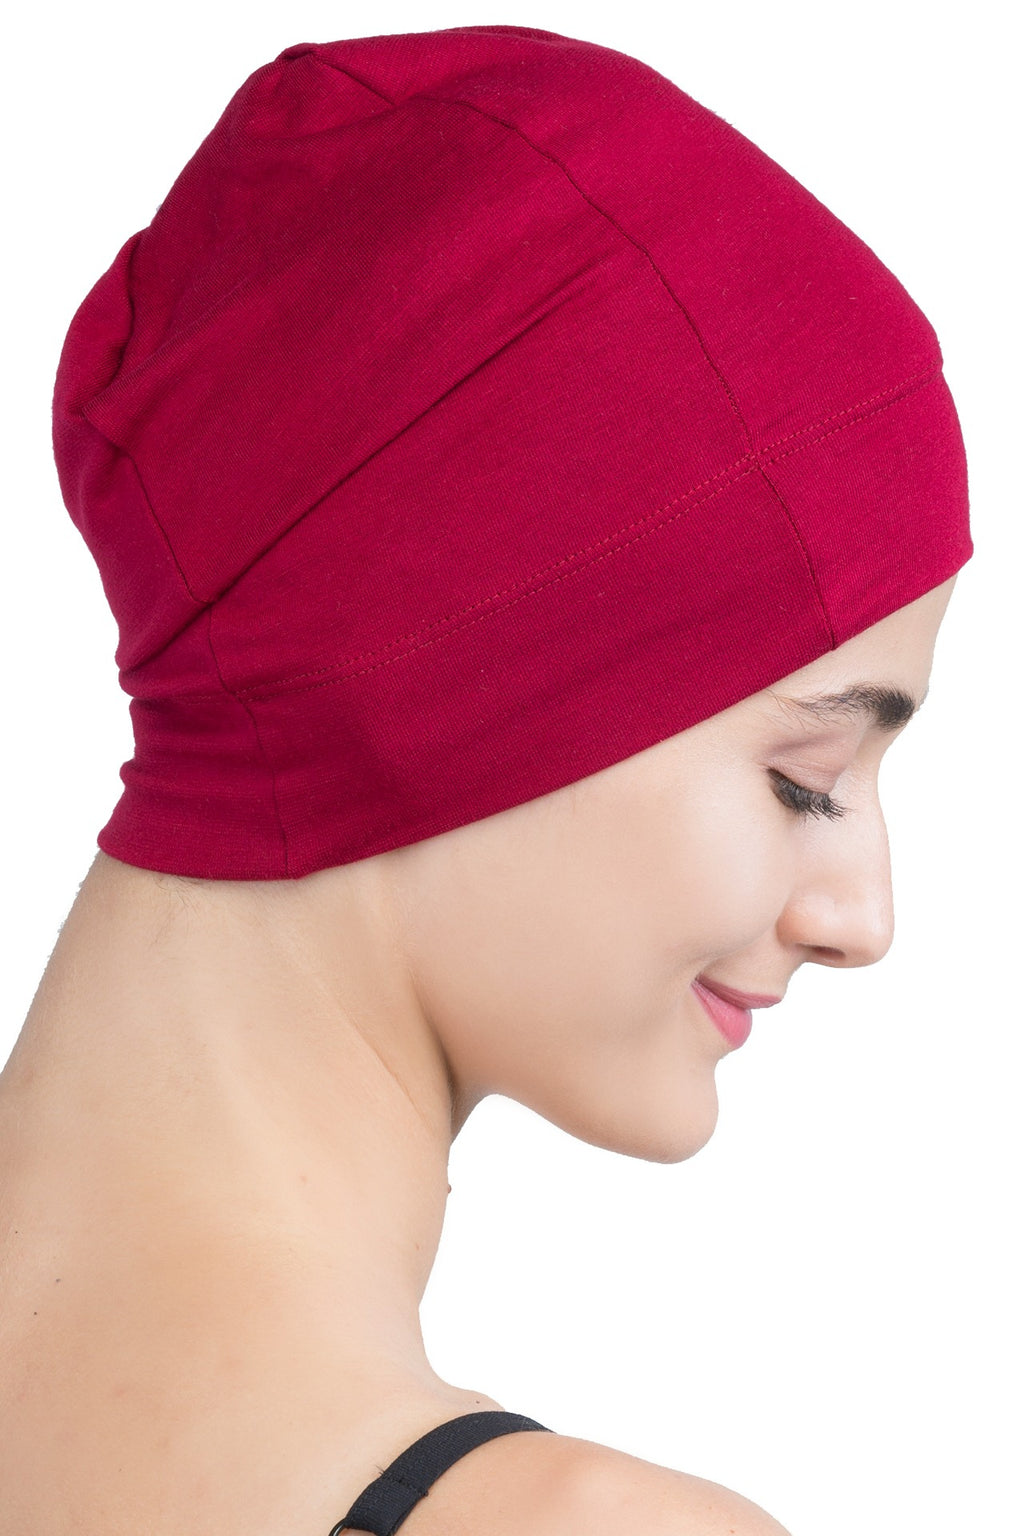 Snug Fit Sleep Cap - Burgundy